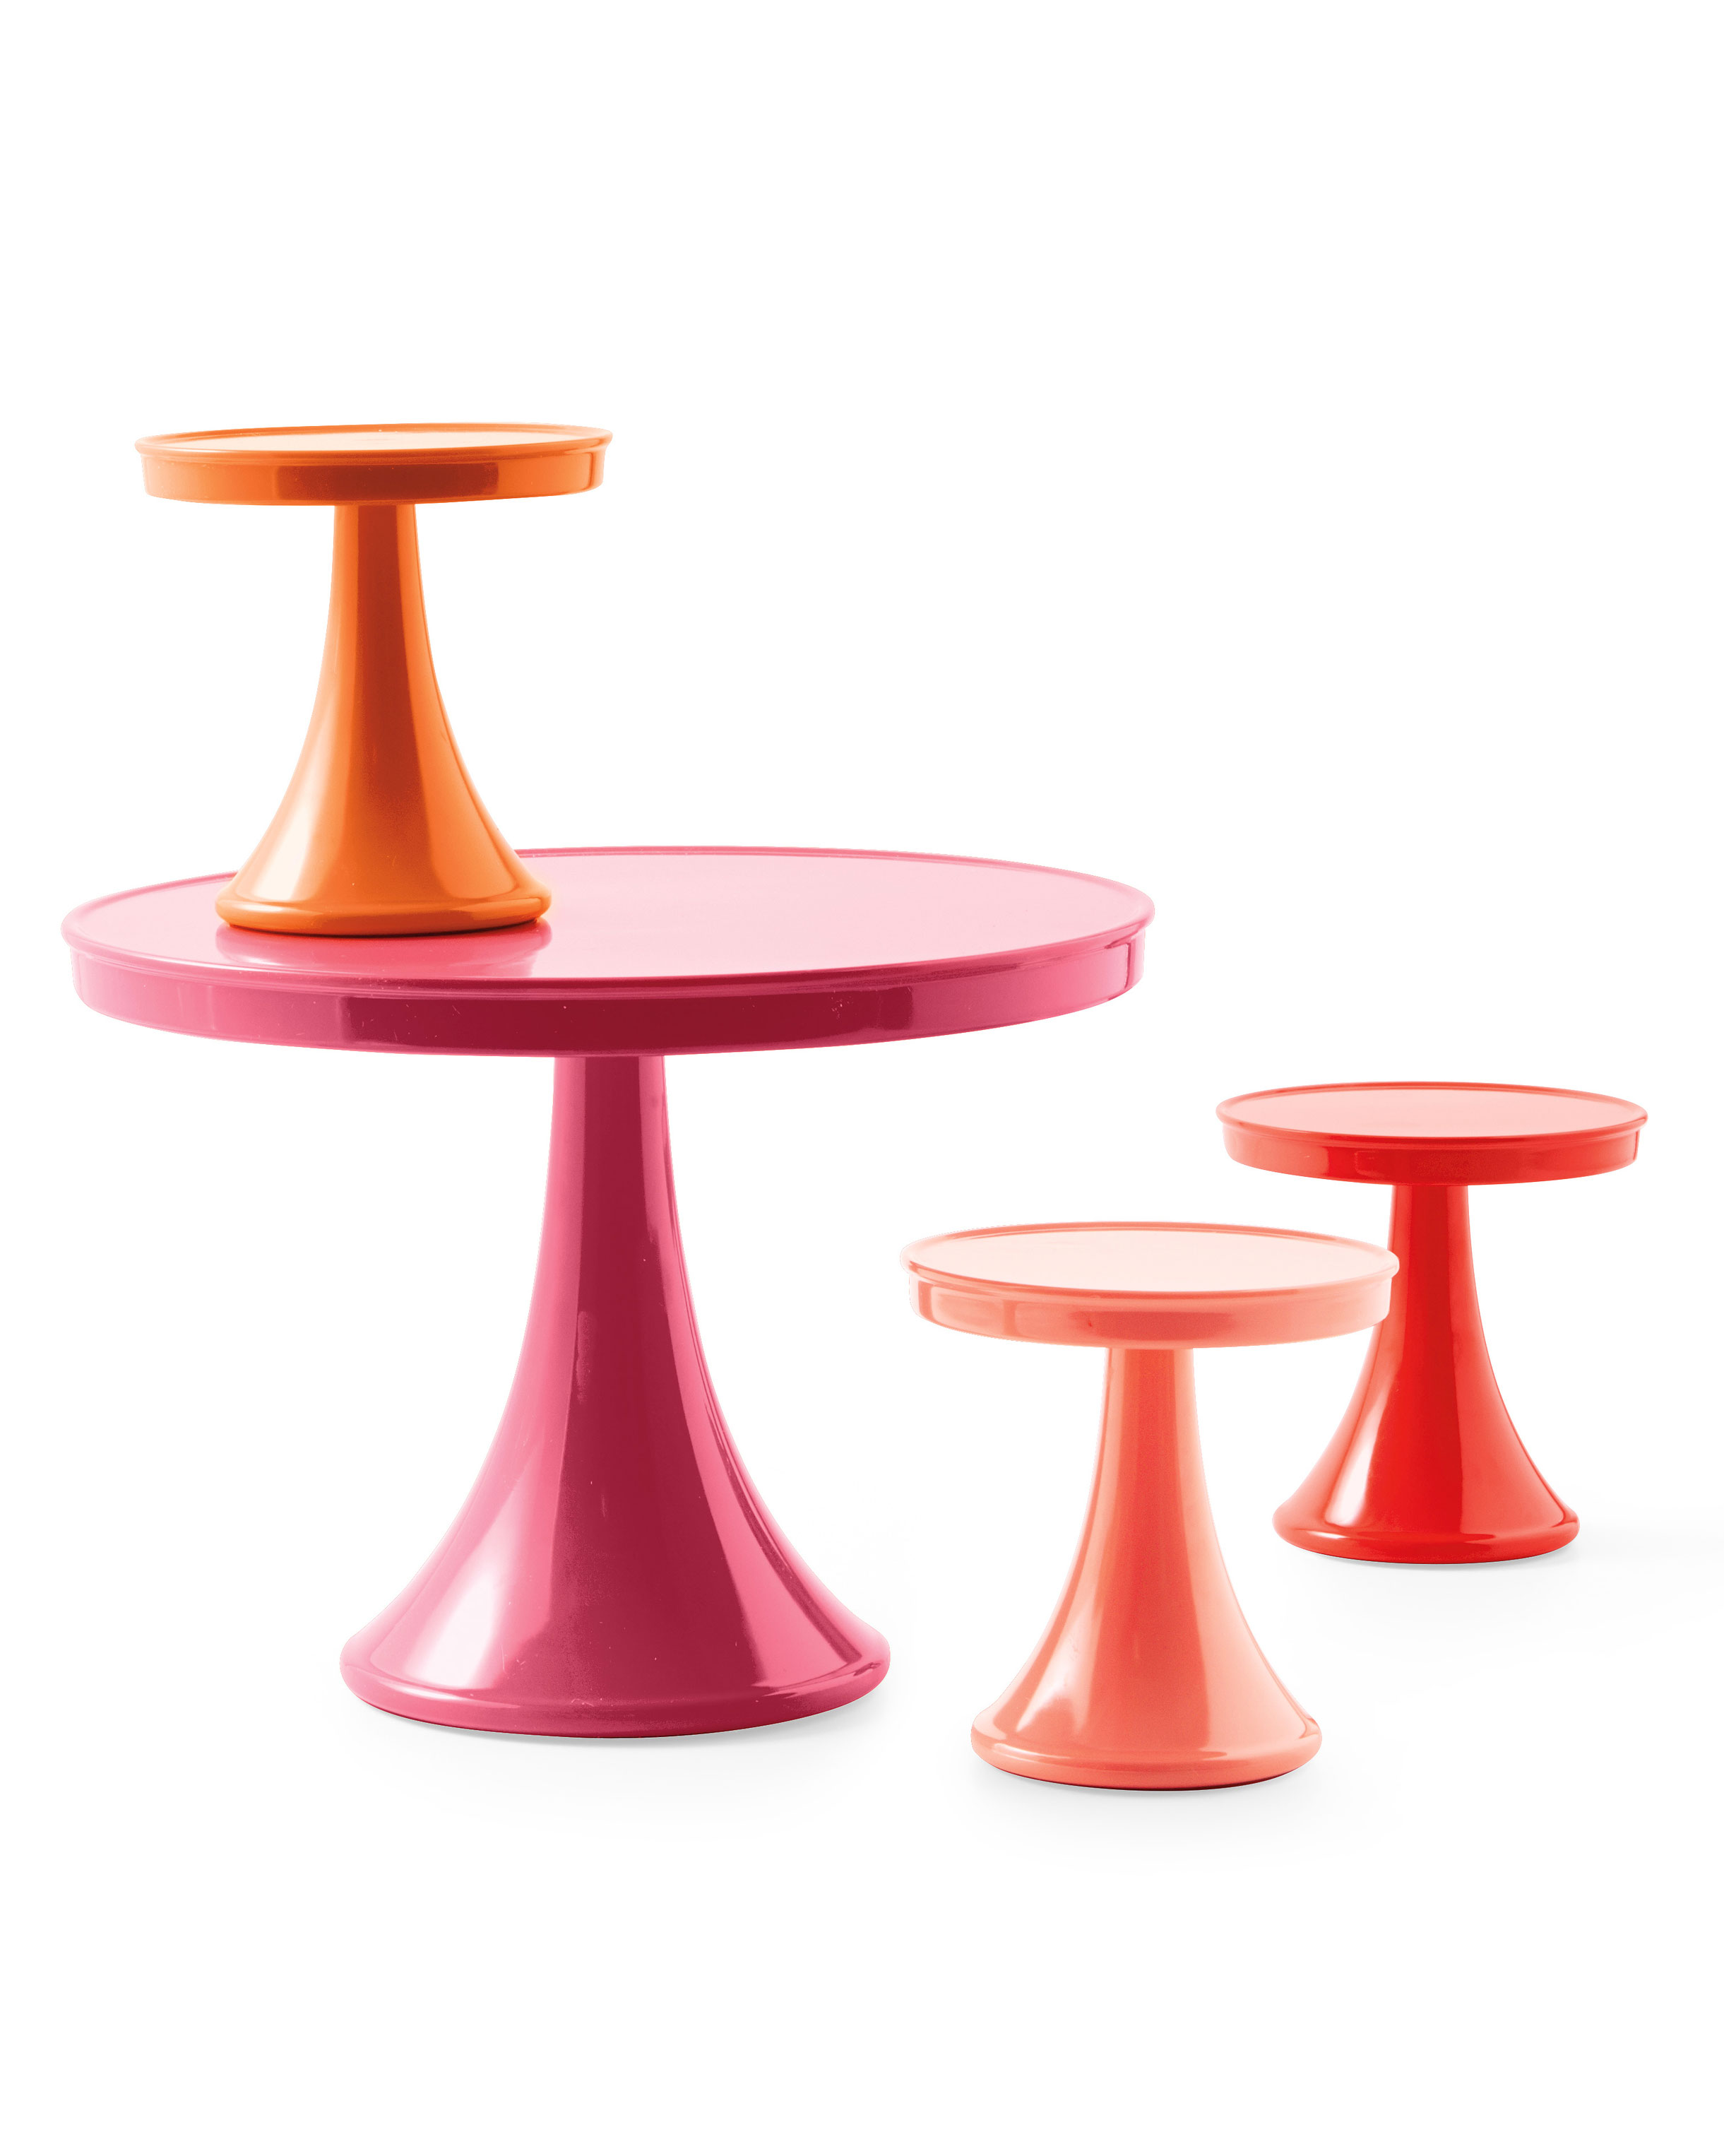 m-in-love-with-cake-cupcake-color-stands-0254-d112722.jpg